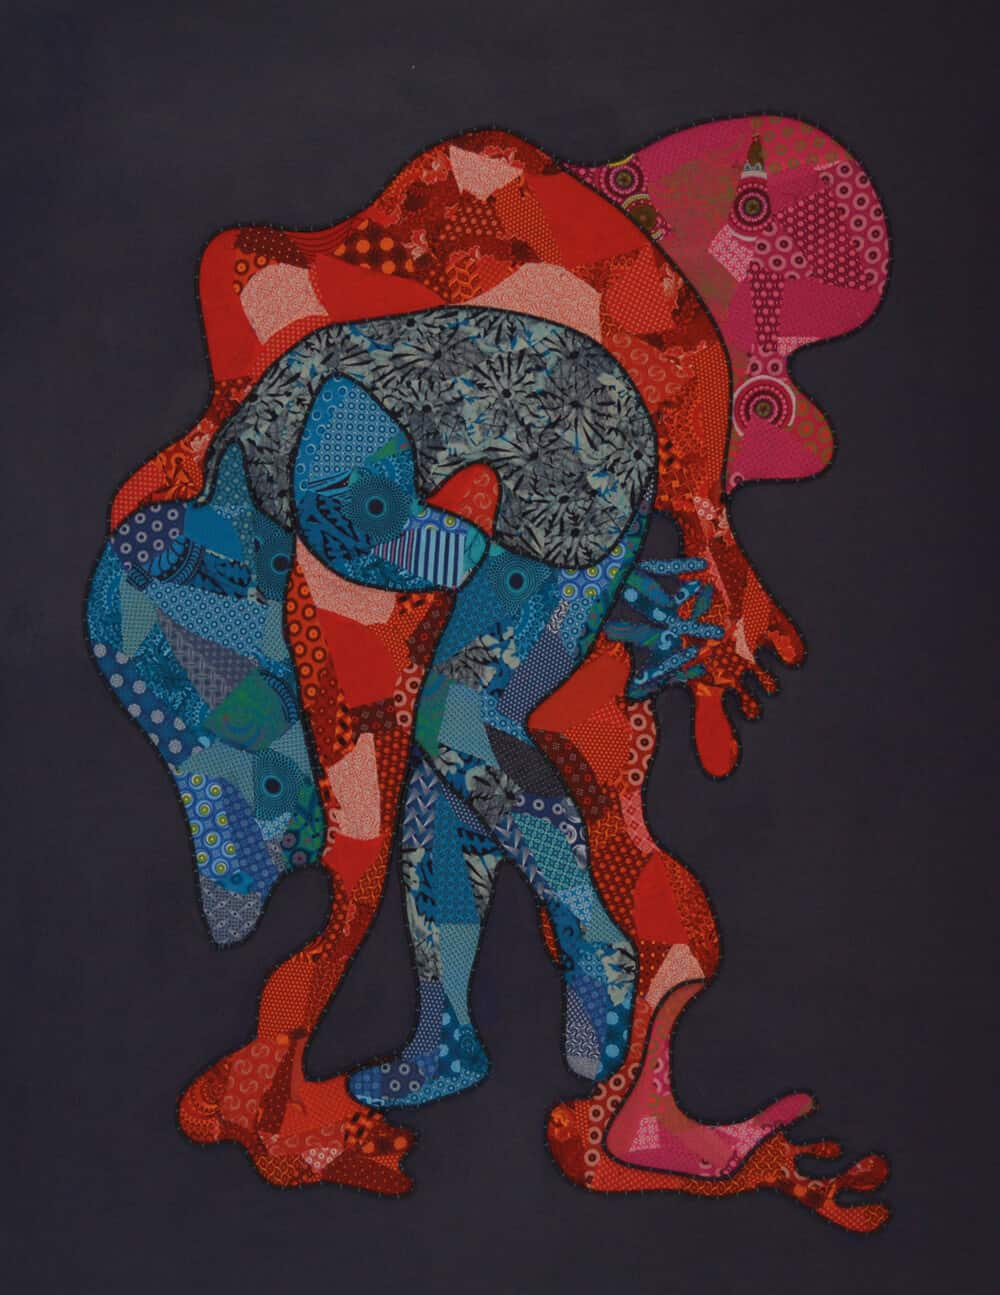 Lizette Chirrime, Dancing spirit. Fabric collage and Stitched leather rope on canvas, 170 x 133cm. All images courtesy of WORLDART gallery